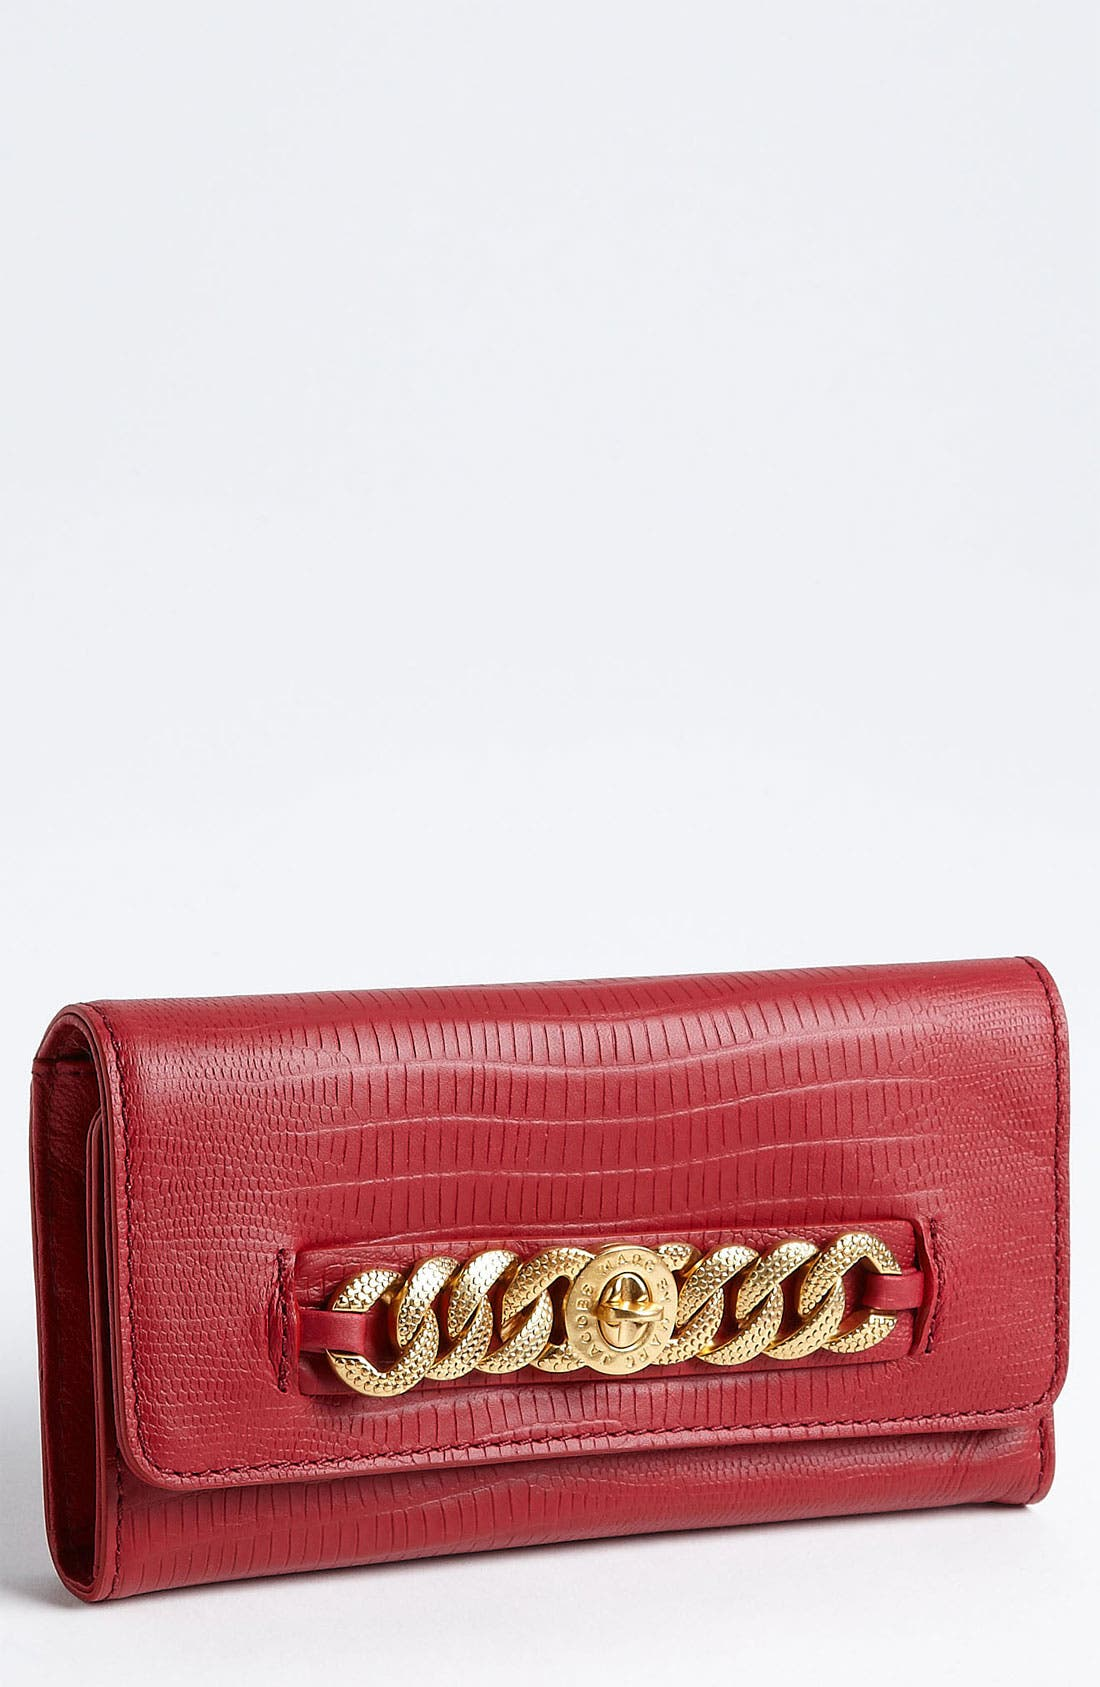 Main Image - MARC BY MARC JACOBS 'Katie Bracelet' Trifold Wallet